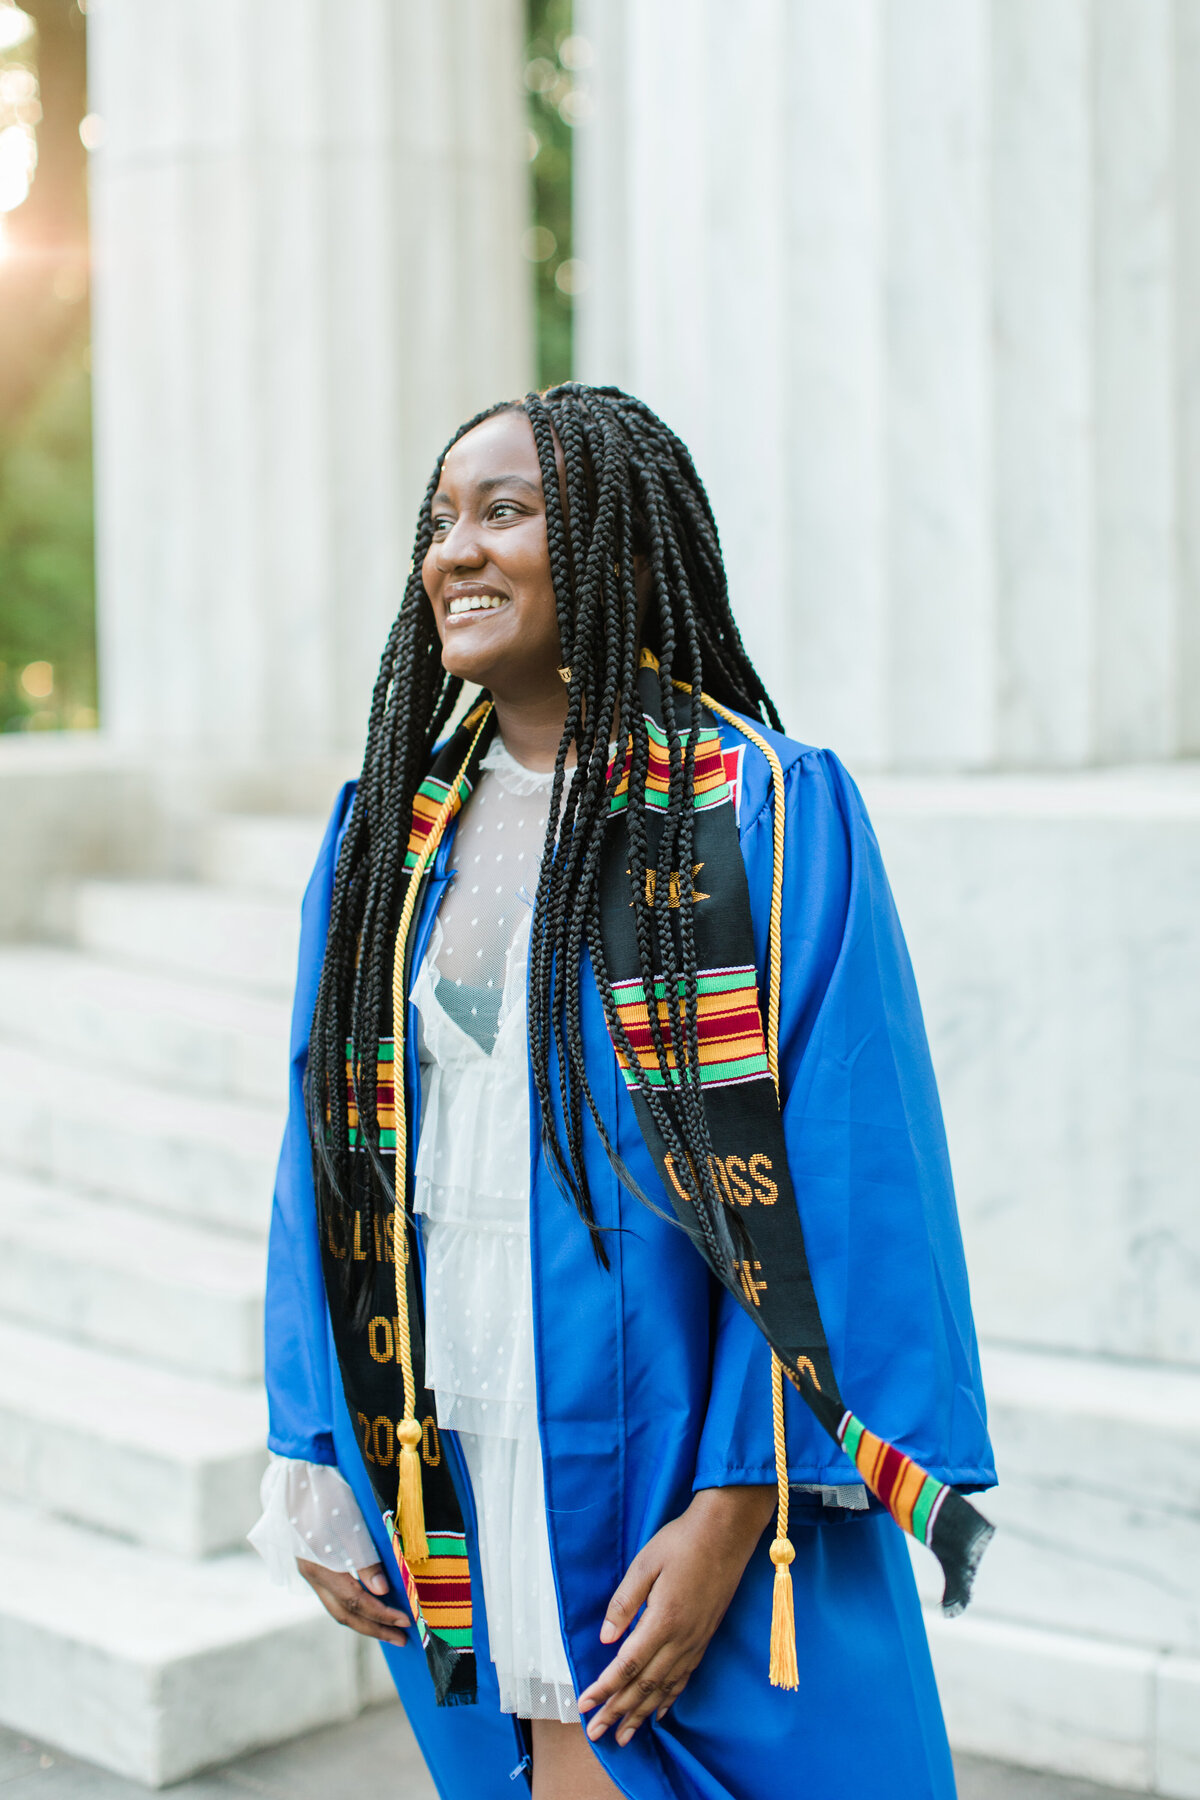 Mia_AmericanUniversity_Washington_DC_Senior_Graduation_Session_2020_Angelika_Johns_Photography-5167